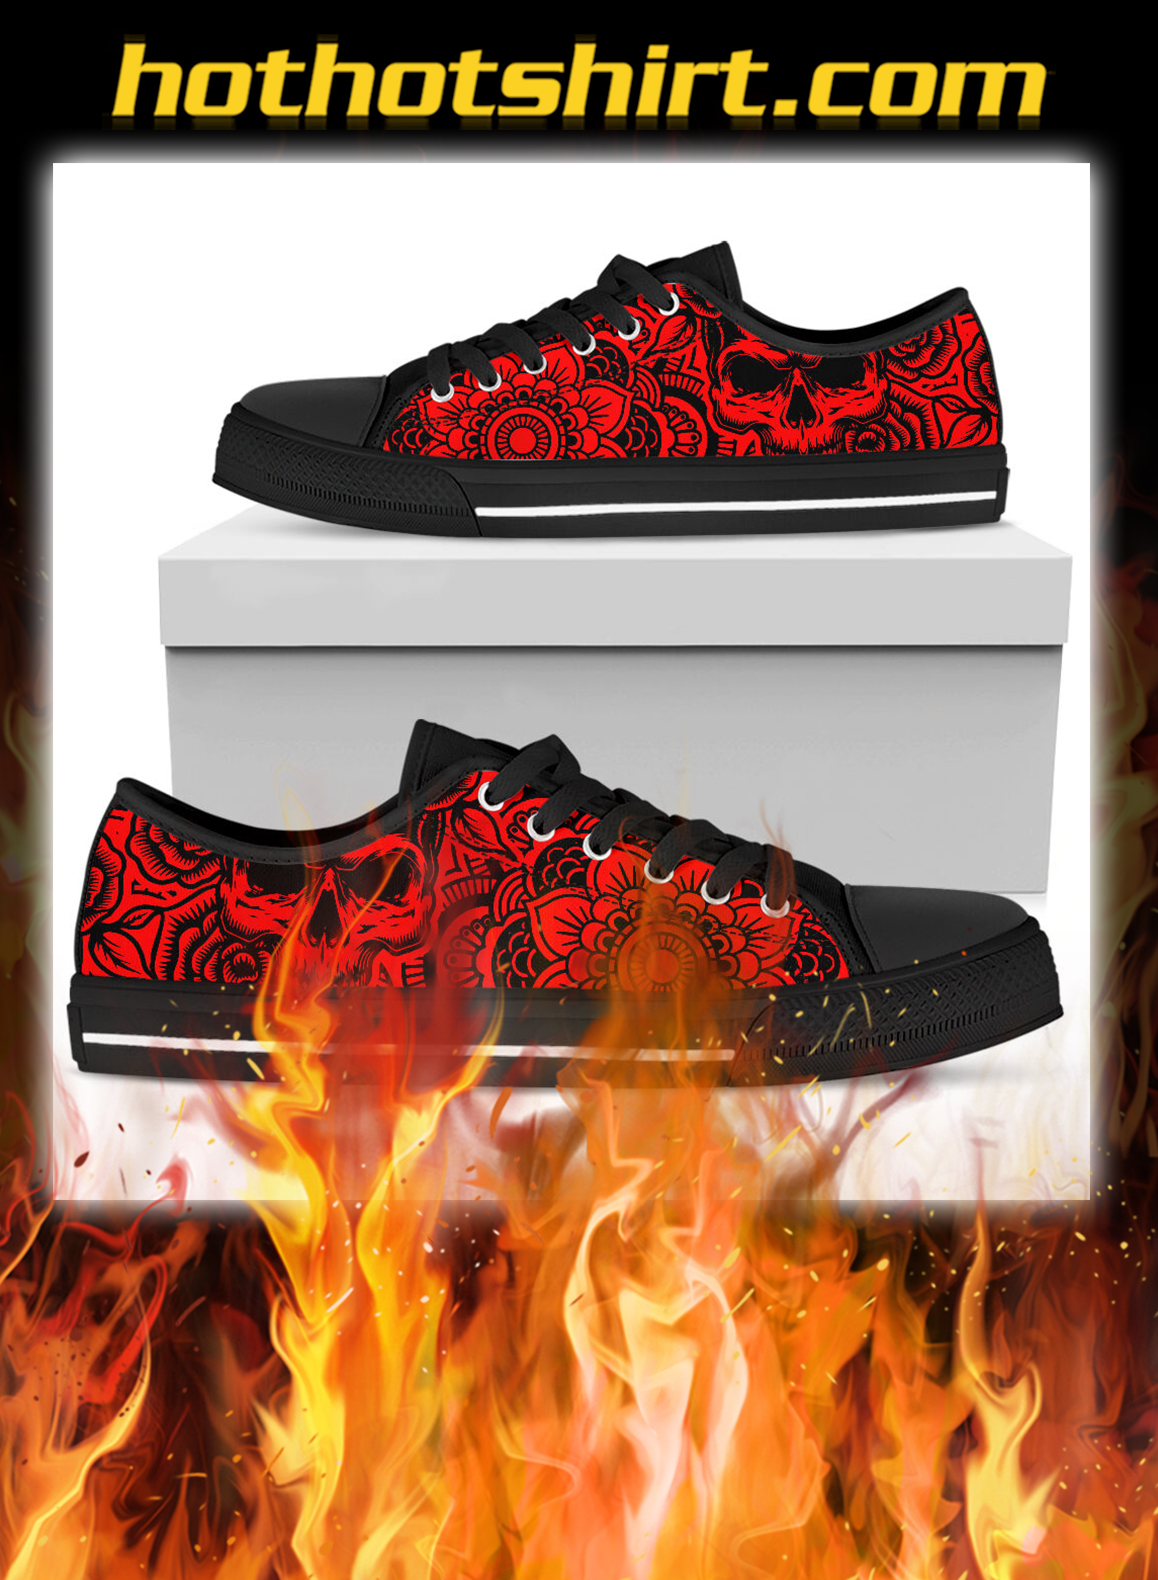 Mandala and skull inspired low top shoes- pic 3